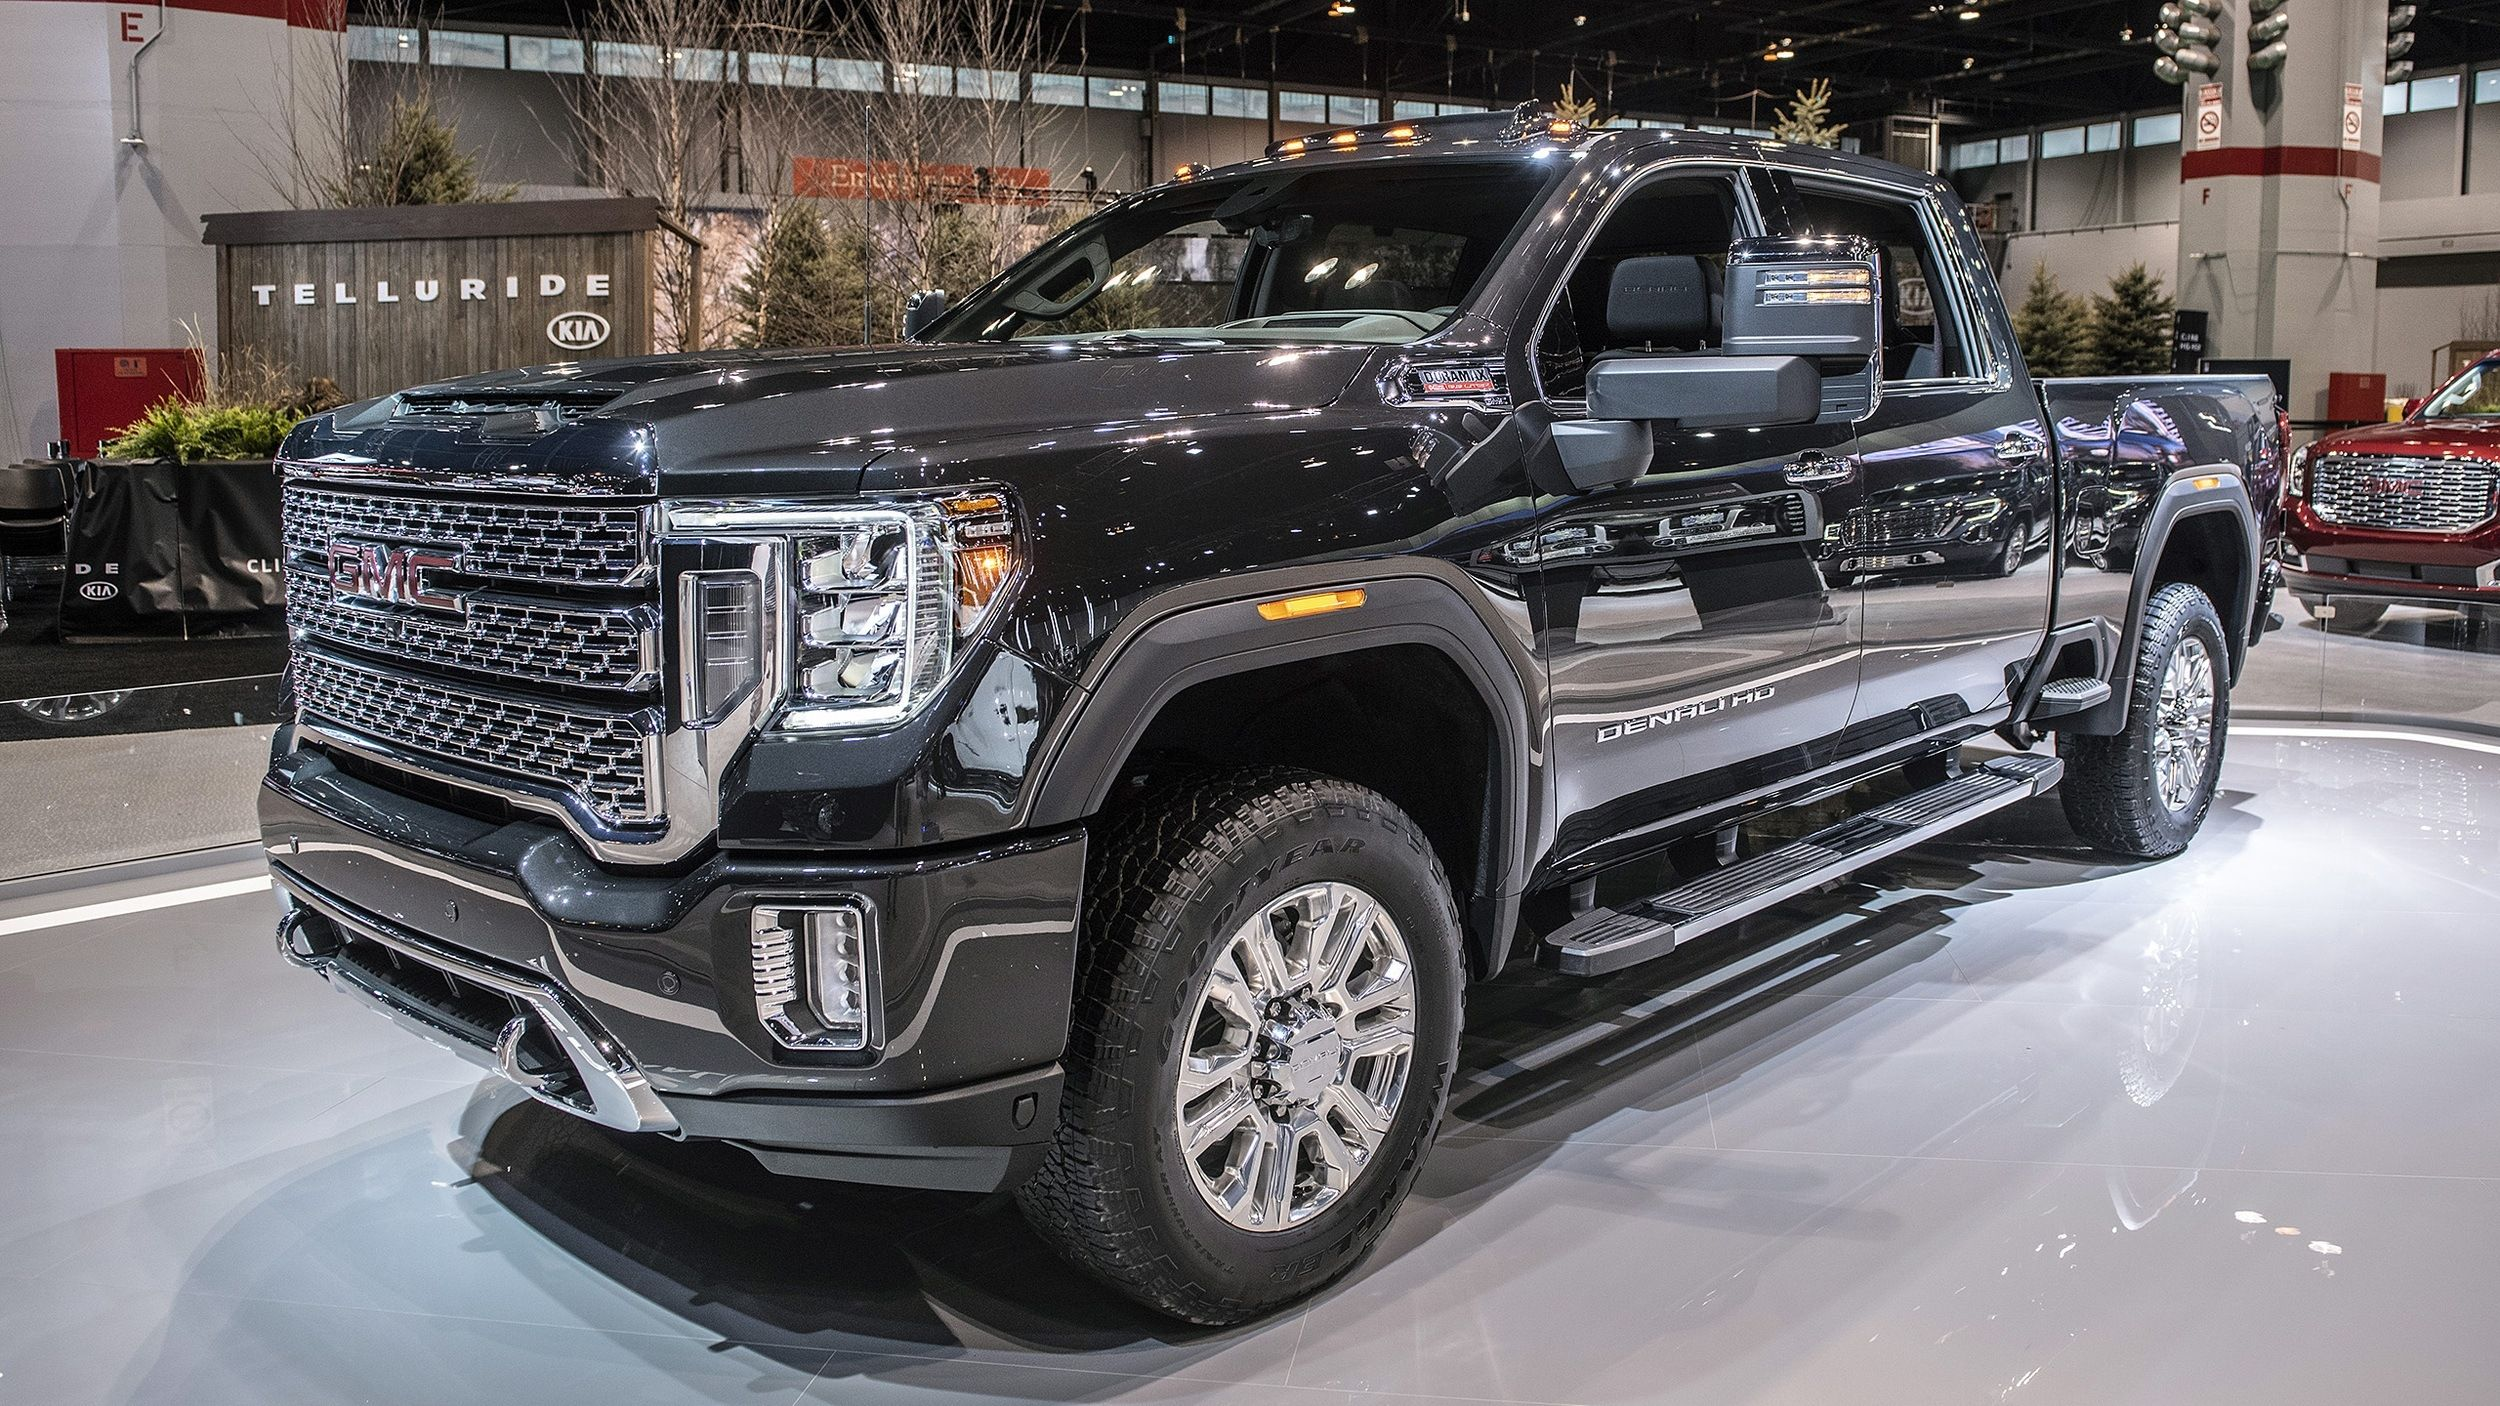 2020 Gmc Sierra Denali Hd Chicago 2019 Photo Gallery Autoblog Exterior And Interior Review Gmc Sierra Denali Gmc Sierra Gmc Denali